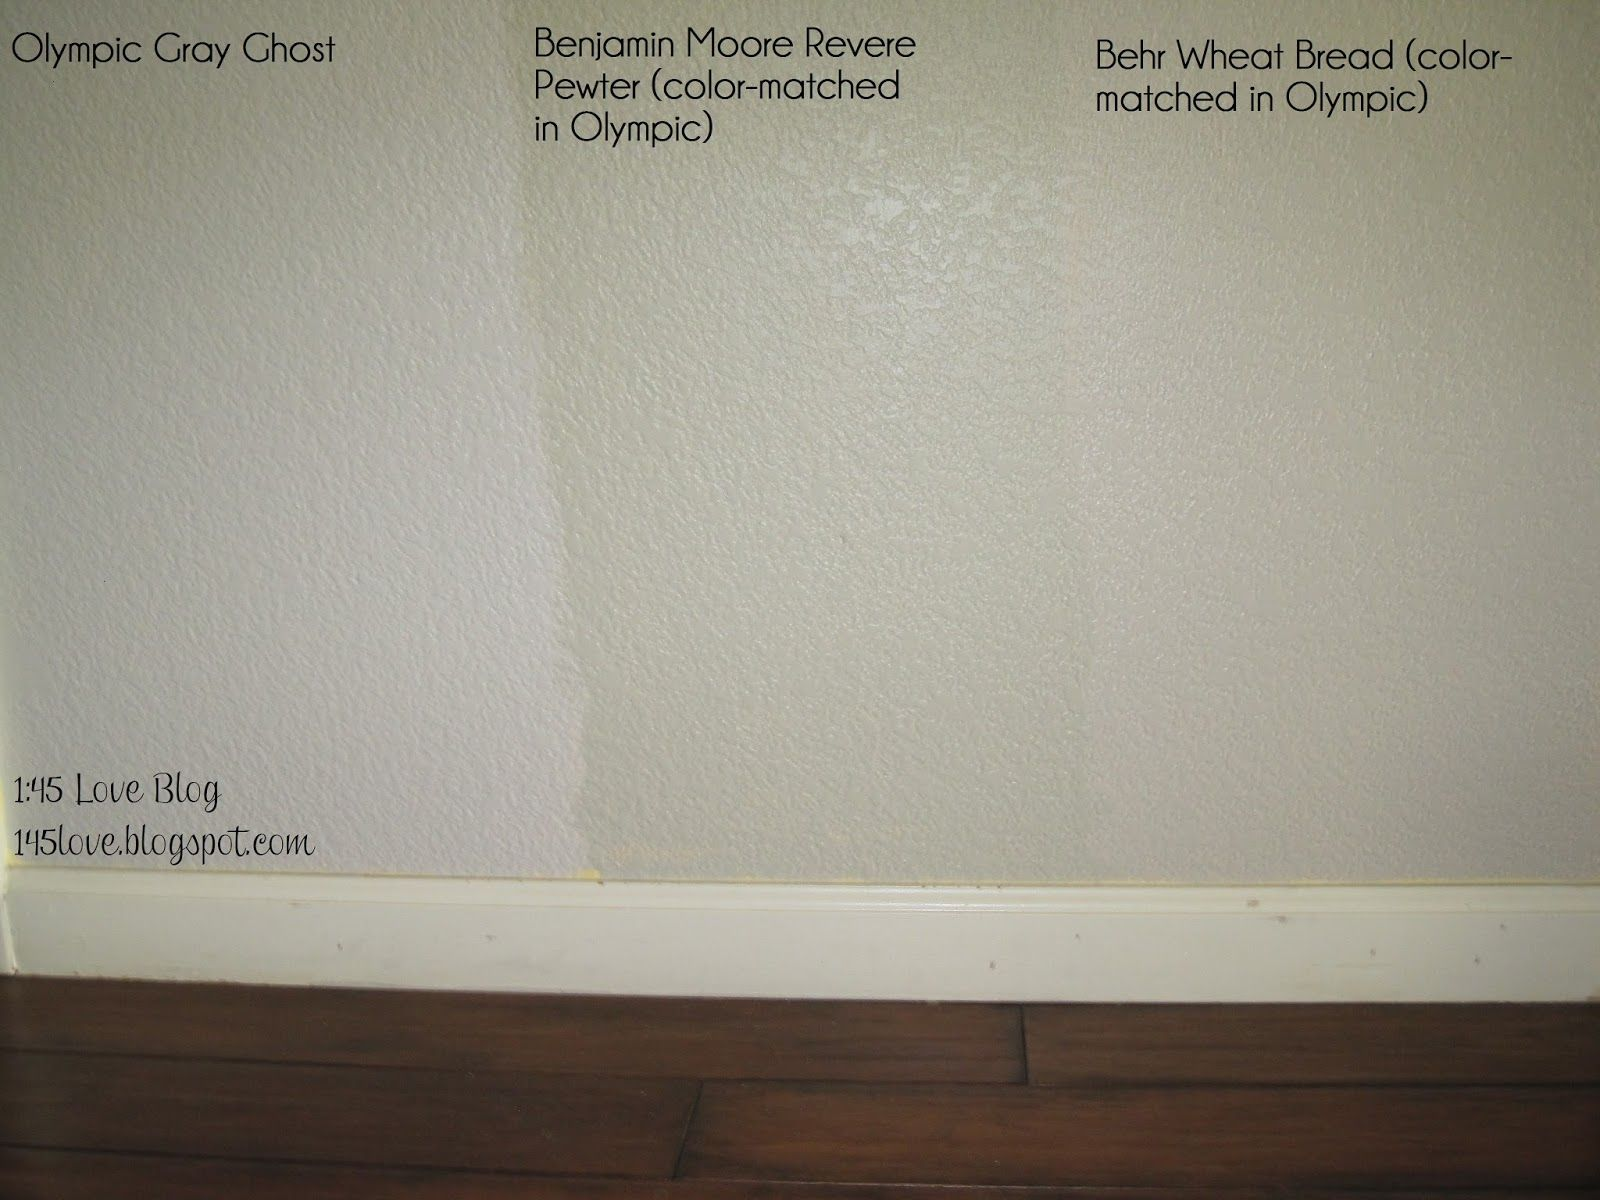 Greige paint wall swatches: Olympic Gray Ghost, Benjamin Moore Revere Pewter, Behr Wheat Bread ...